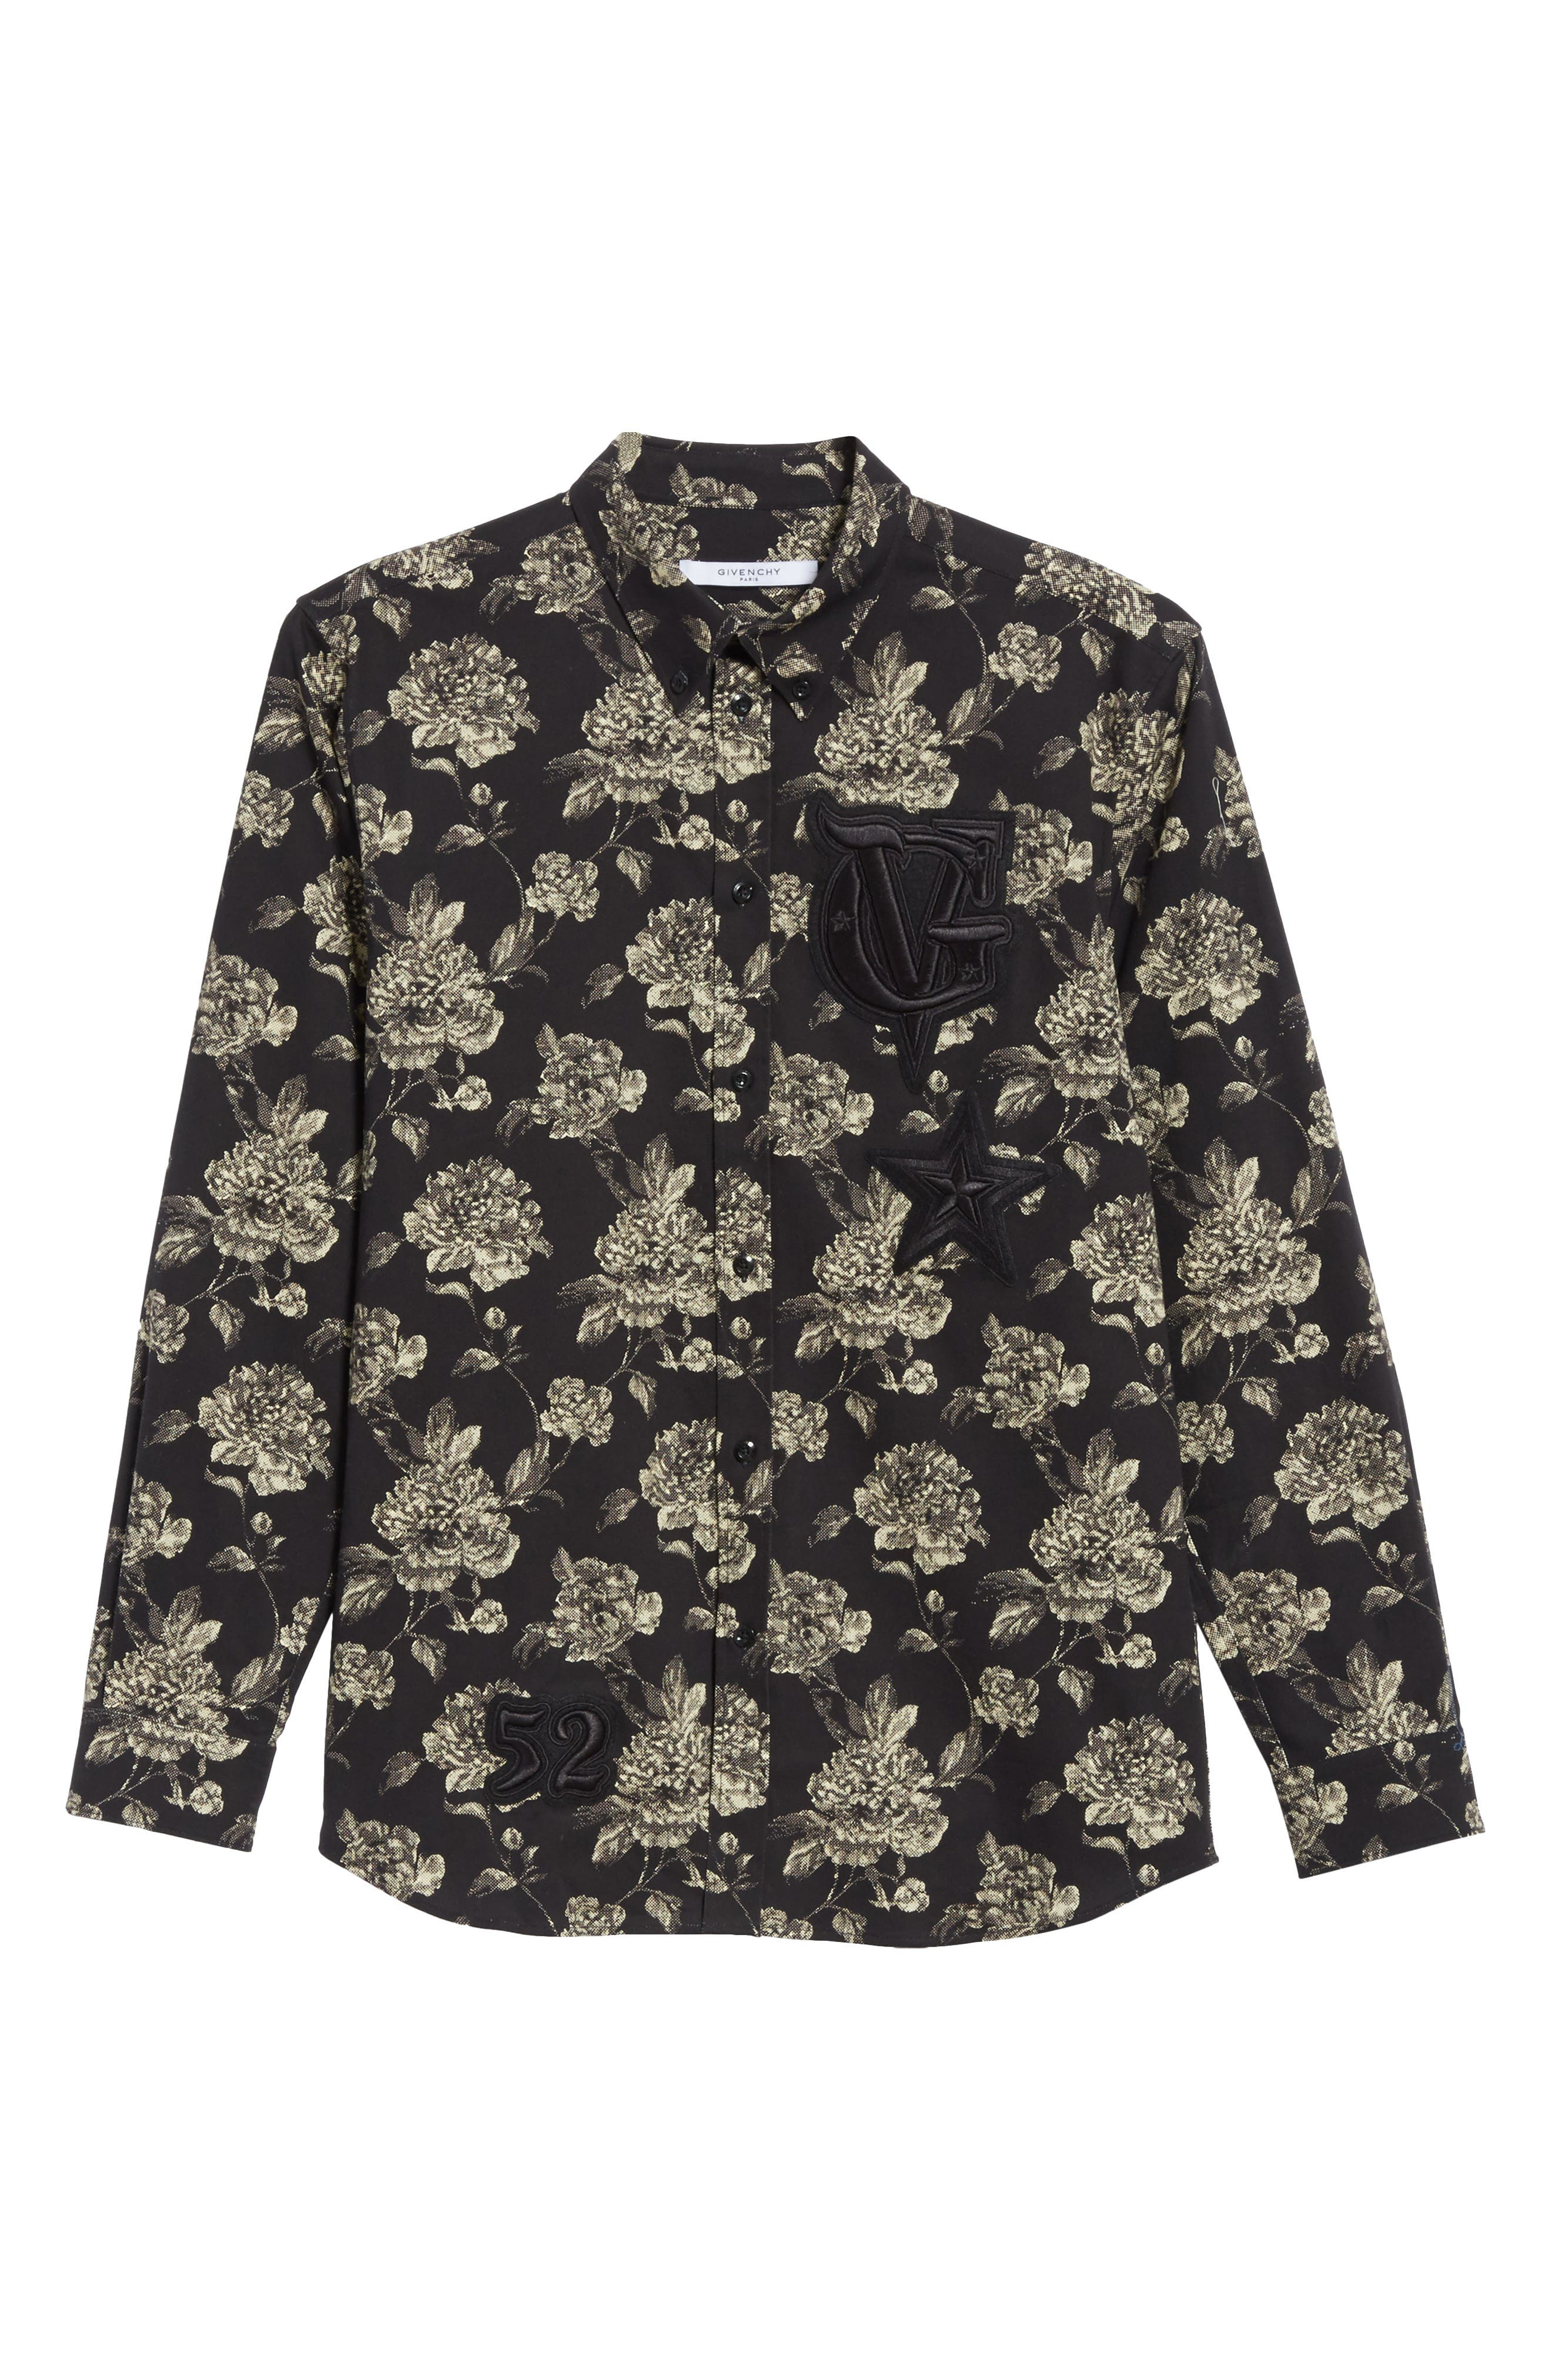 Floral Print Shirt,                             Alternate thumbnail 6, color,                             007